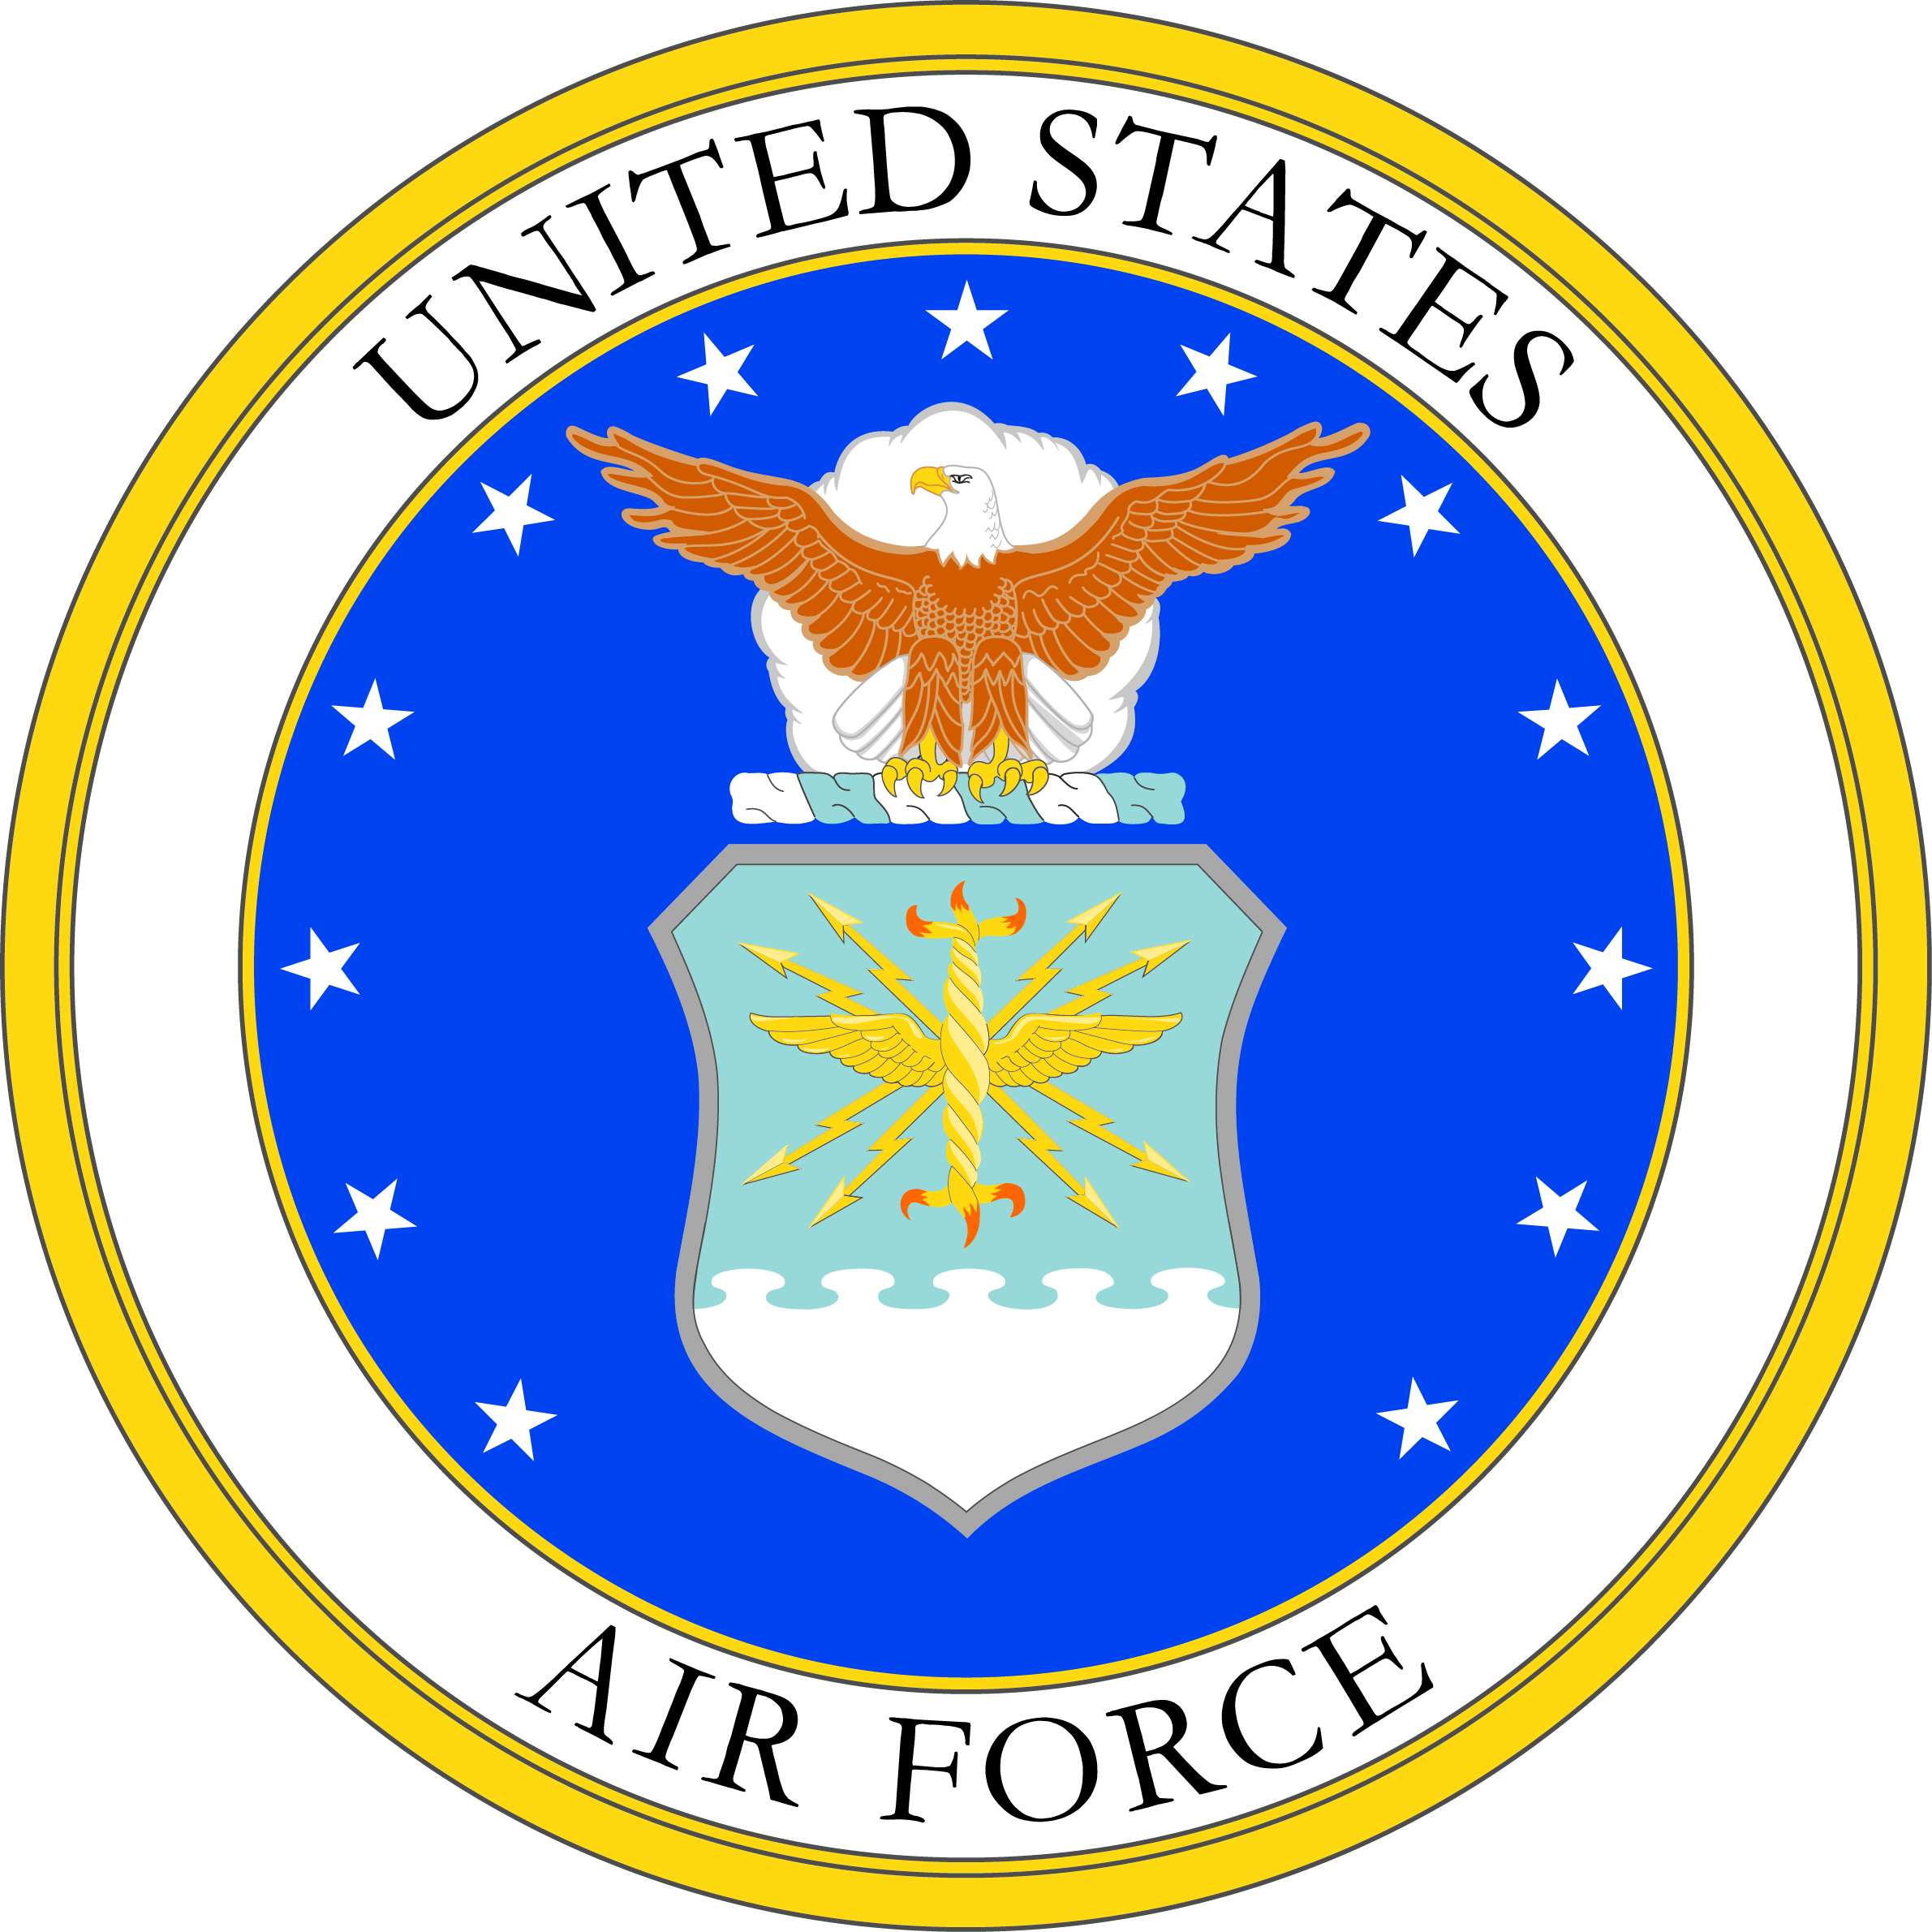 United States Army Clipart